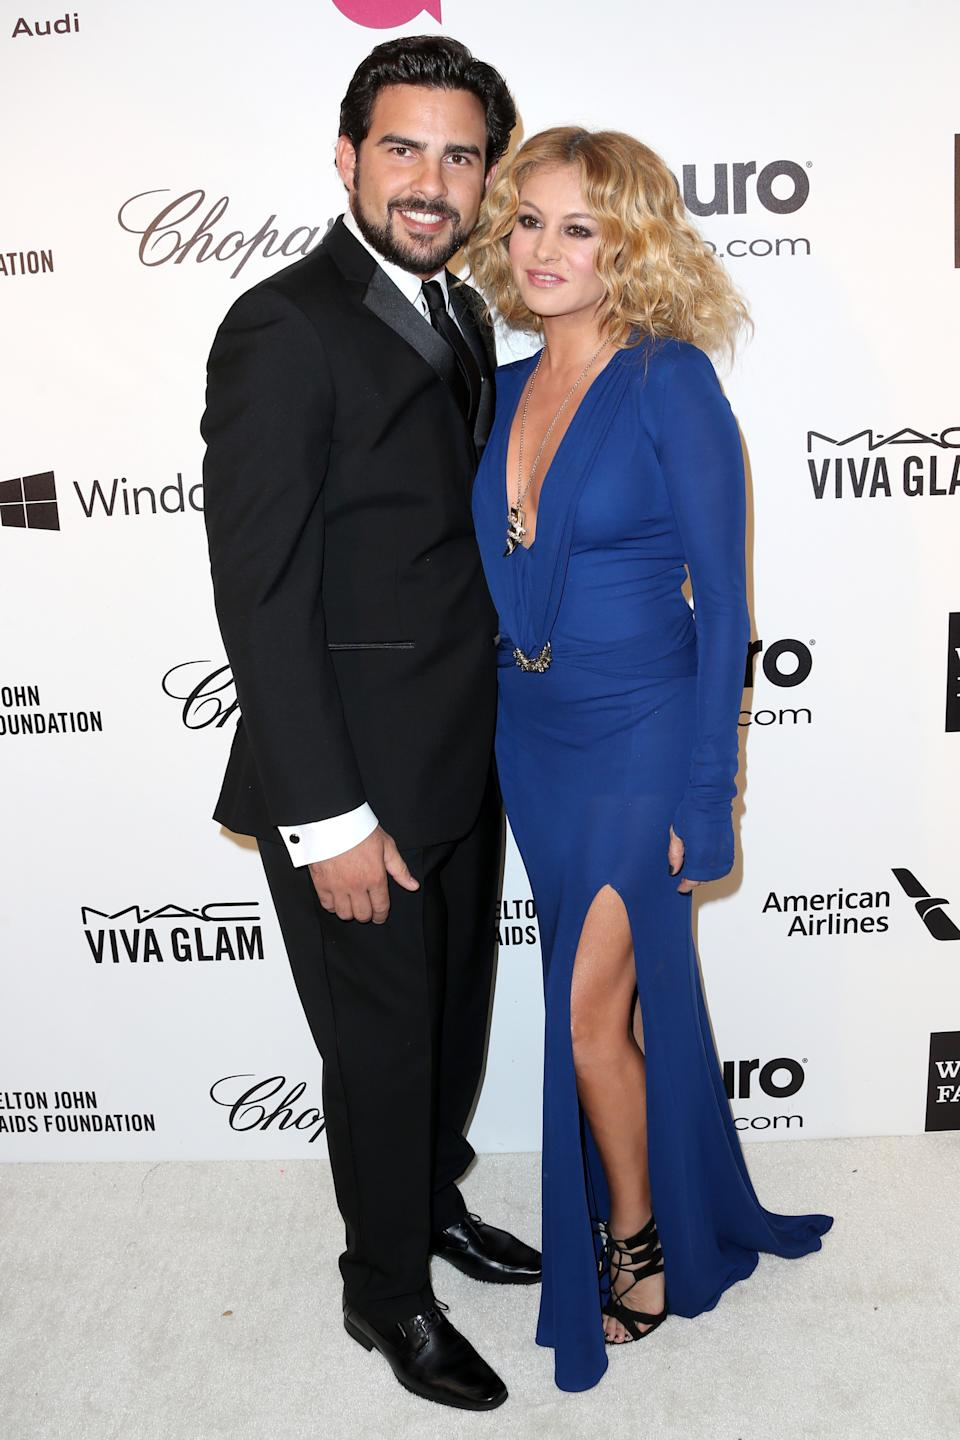 LOS ANGELES, CA - MARCH 02:  Singers Paulina Rubio (R) and Gerardo Bazua attend the 22nd Annual Elton John AIDS Foundation's Oscar Viewing Party on March 2, 2014 in Los Angeles, California.  (Photo by Frederick M. Brown/Getty Images)